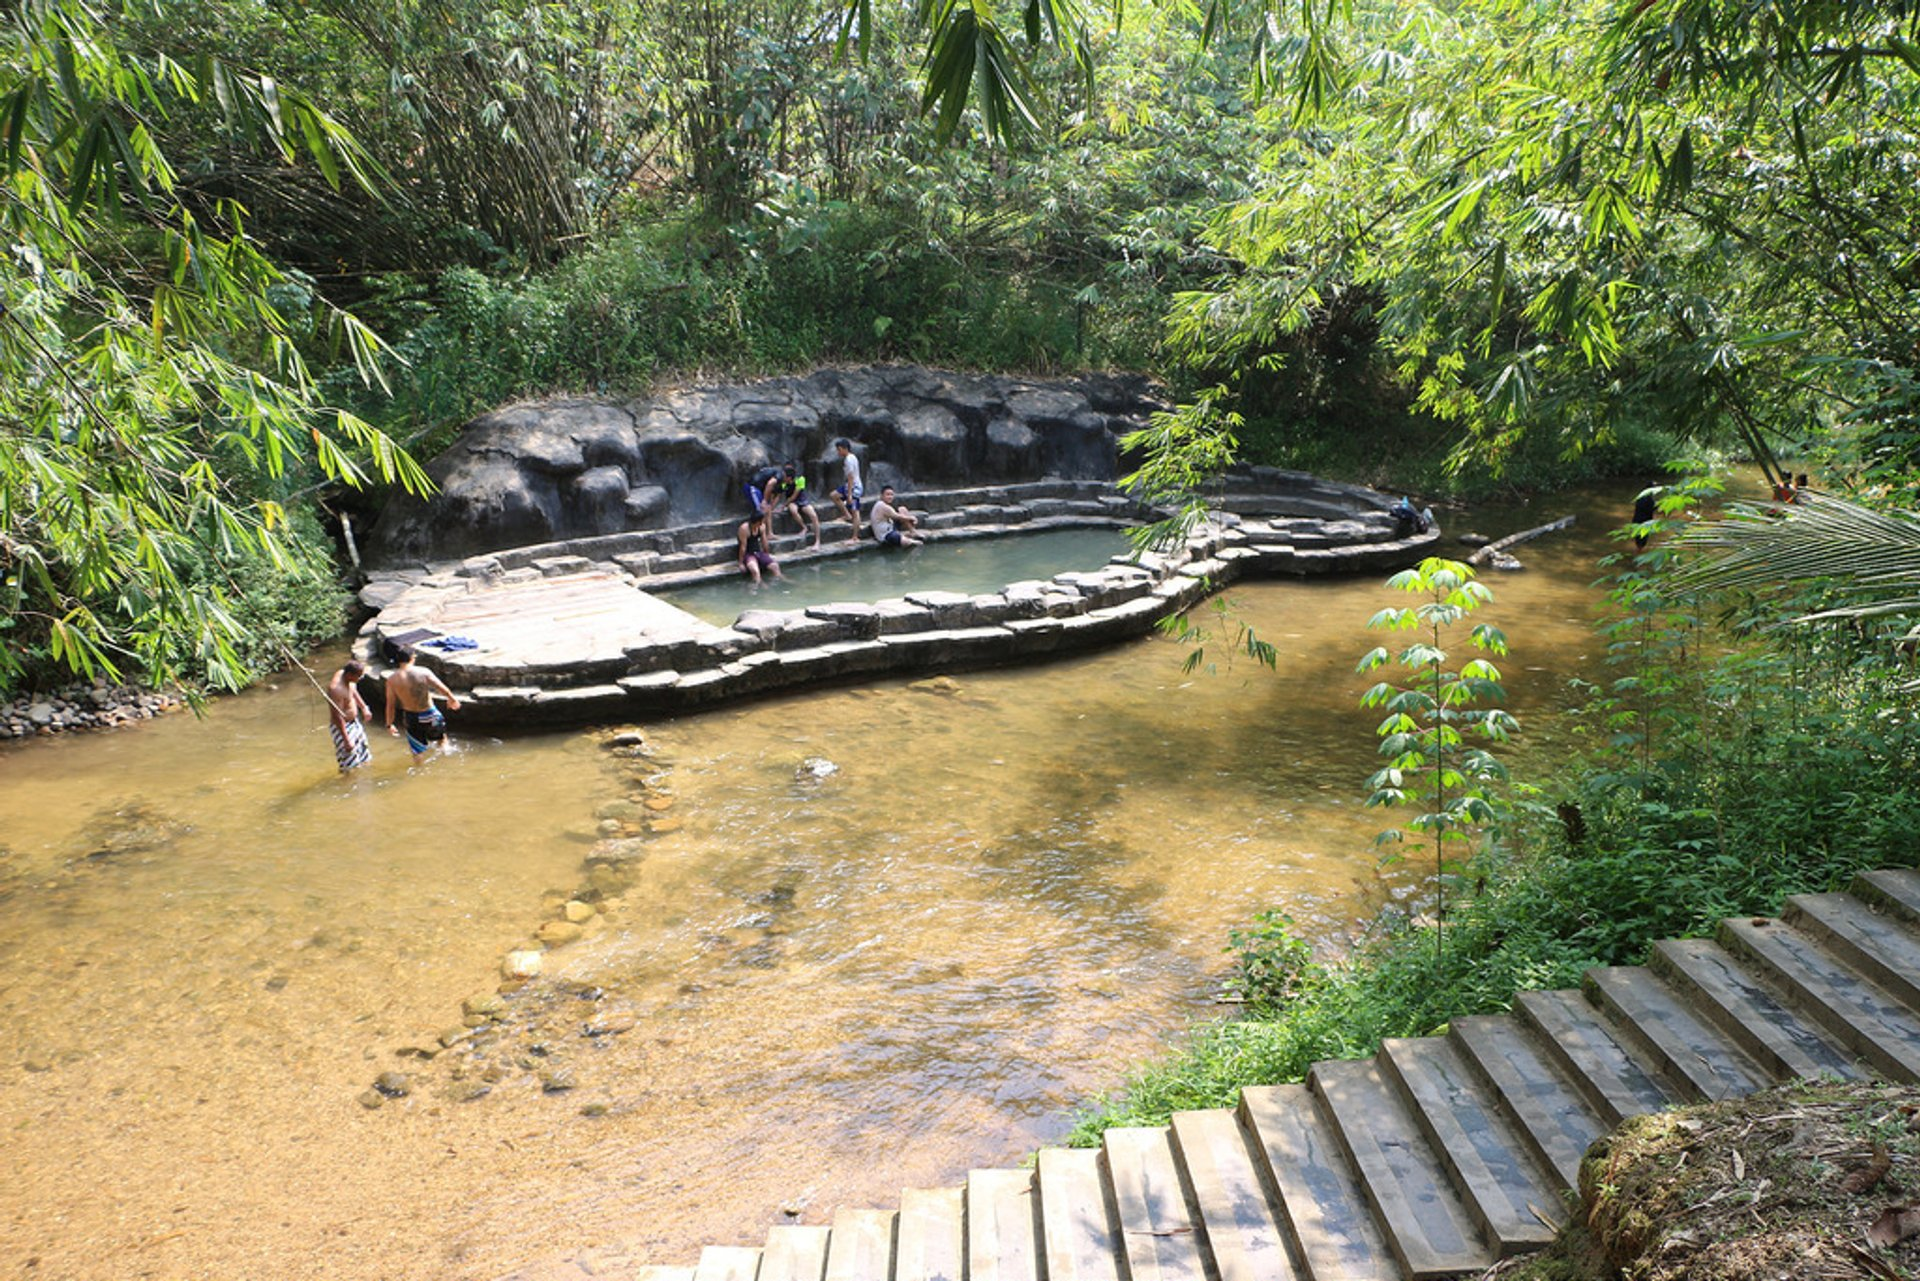 Hot springs near the Annah Rais longhouse 2019